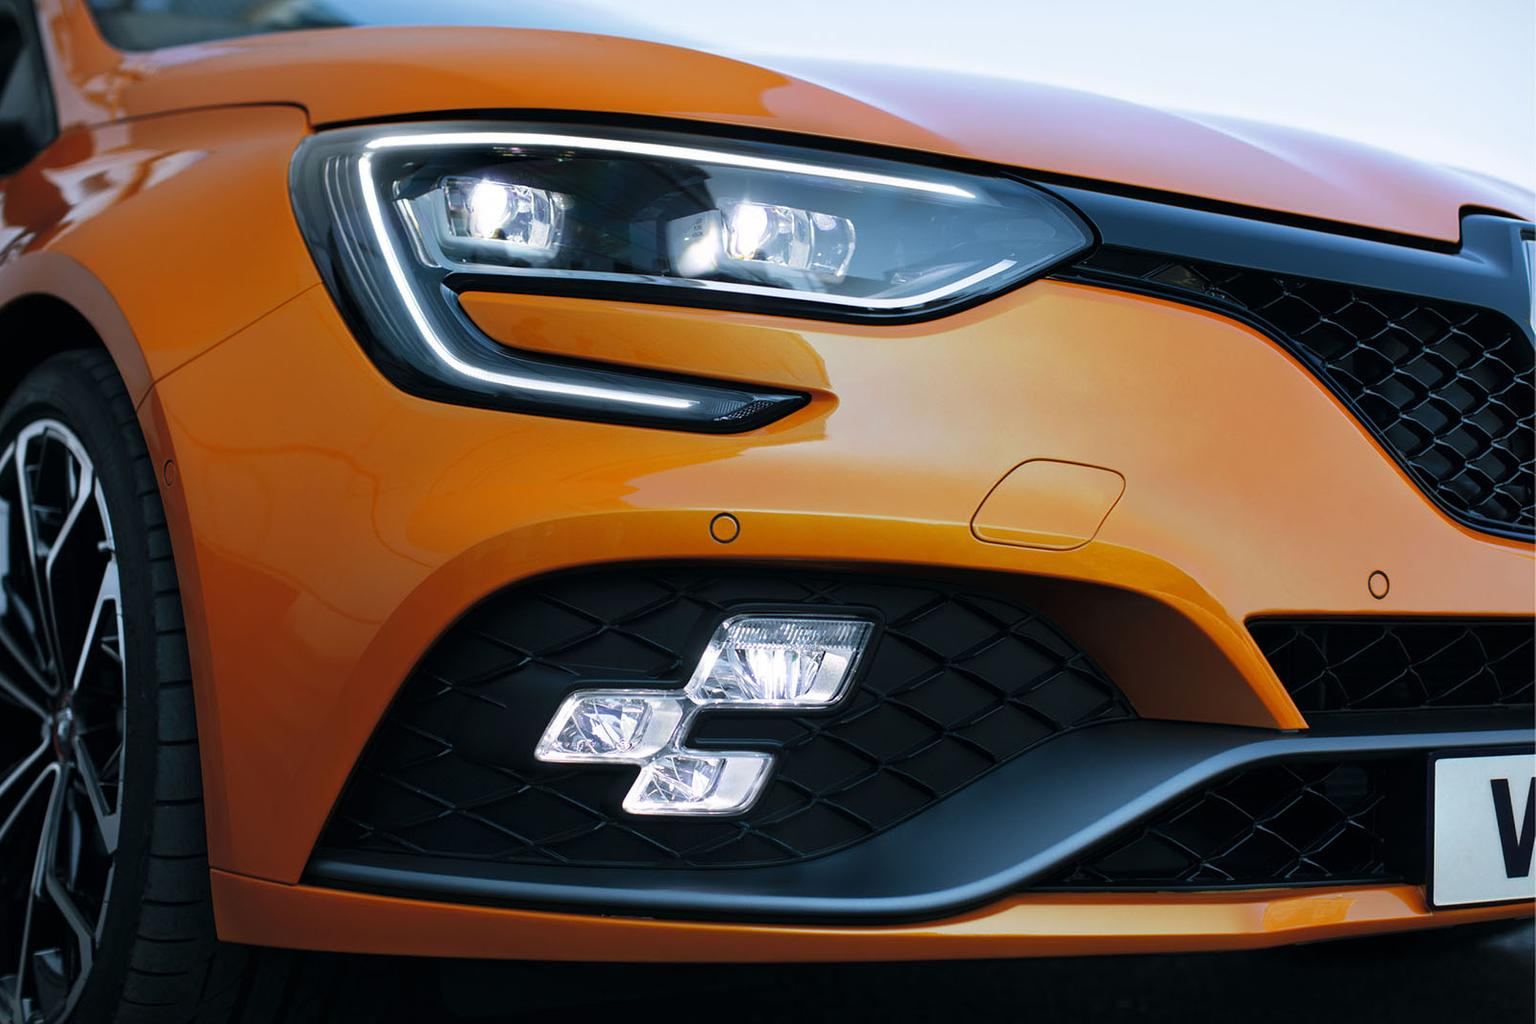 New Renault Megane RS revealed – interior and styling